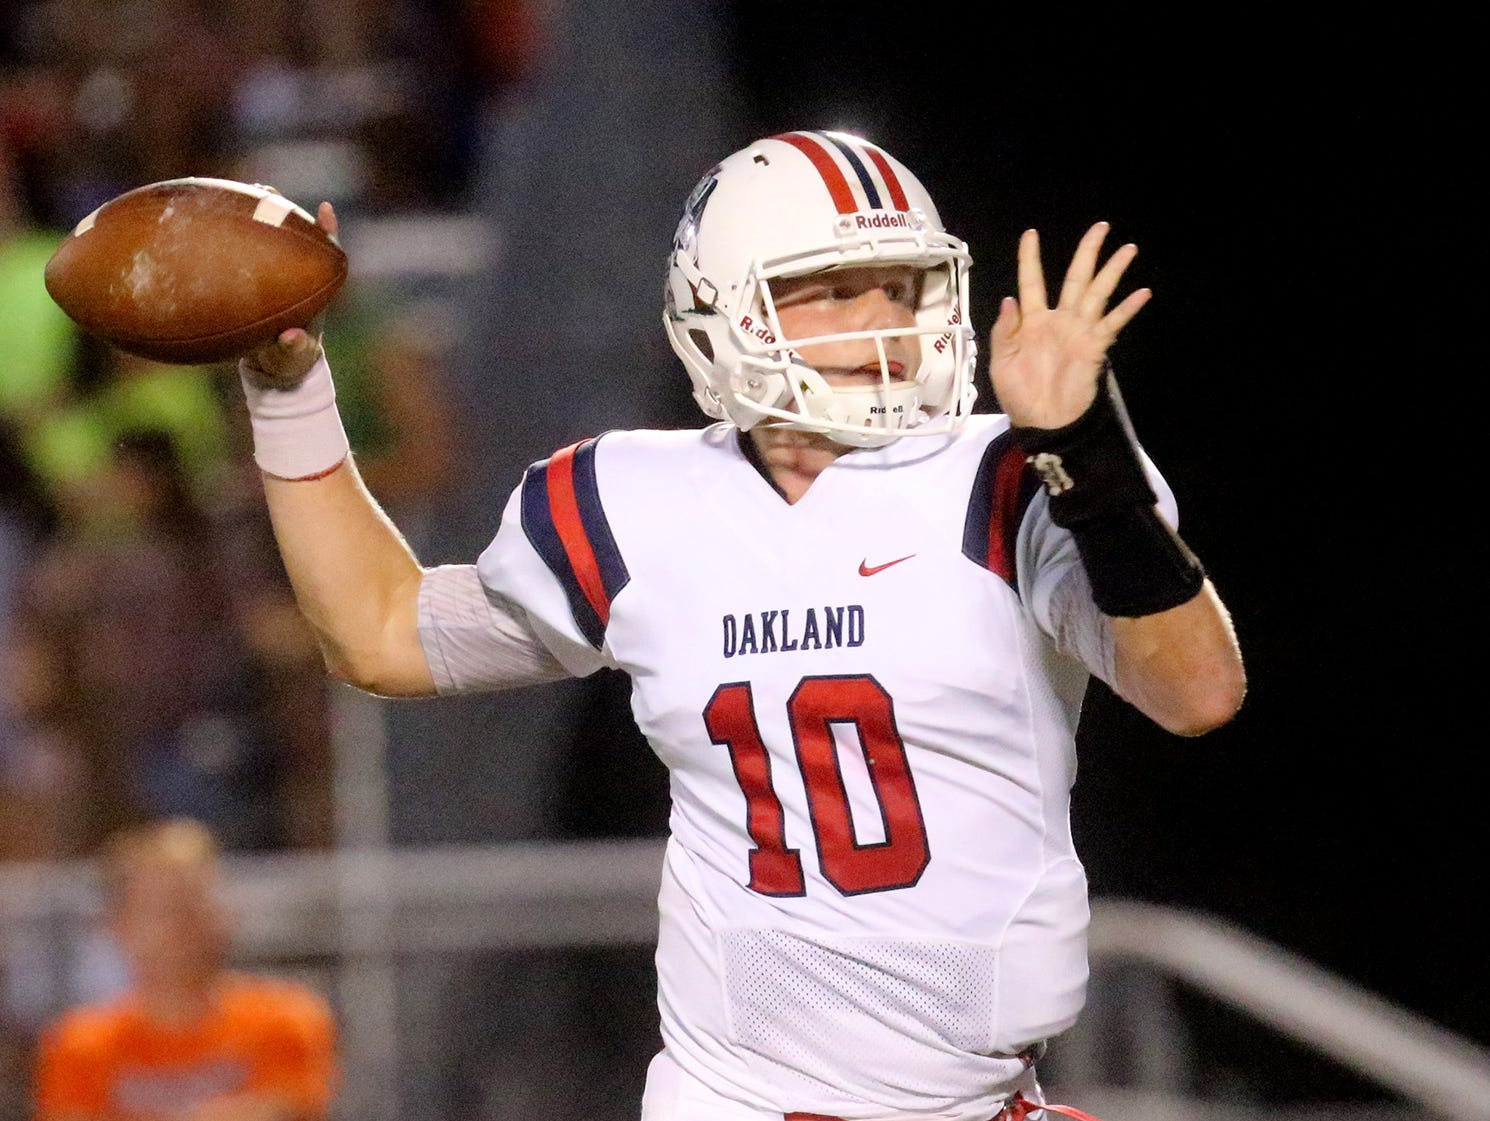 Oakland's quarterback Brendon Matthews (10) drops back to pass during the game against Blackman on Friday, Sept. 16, 2016, at Blackman.